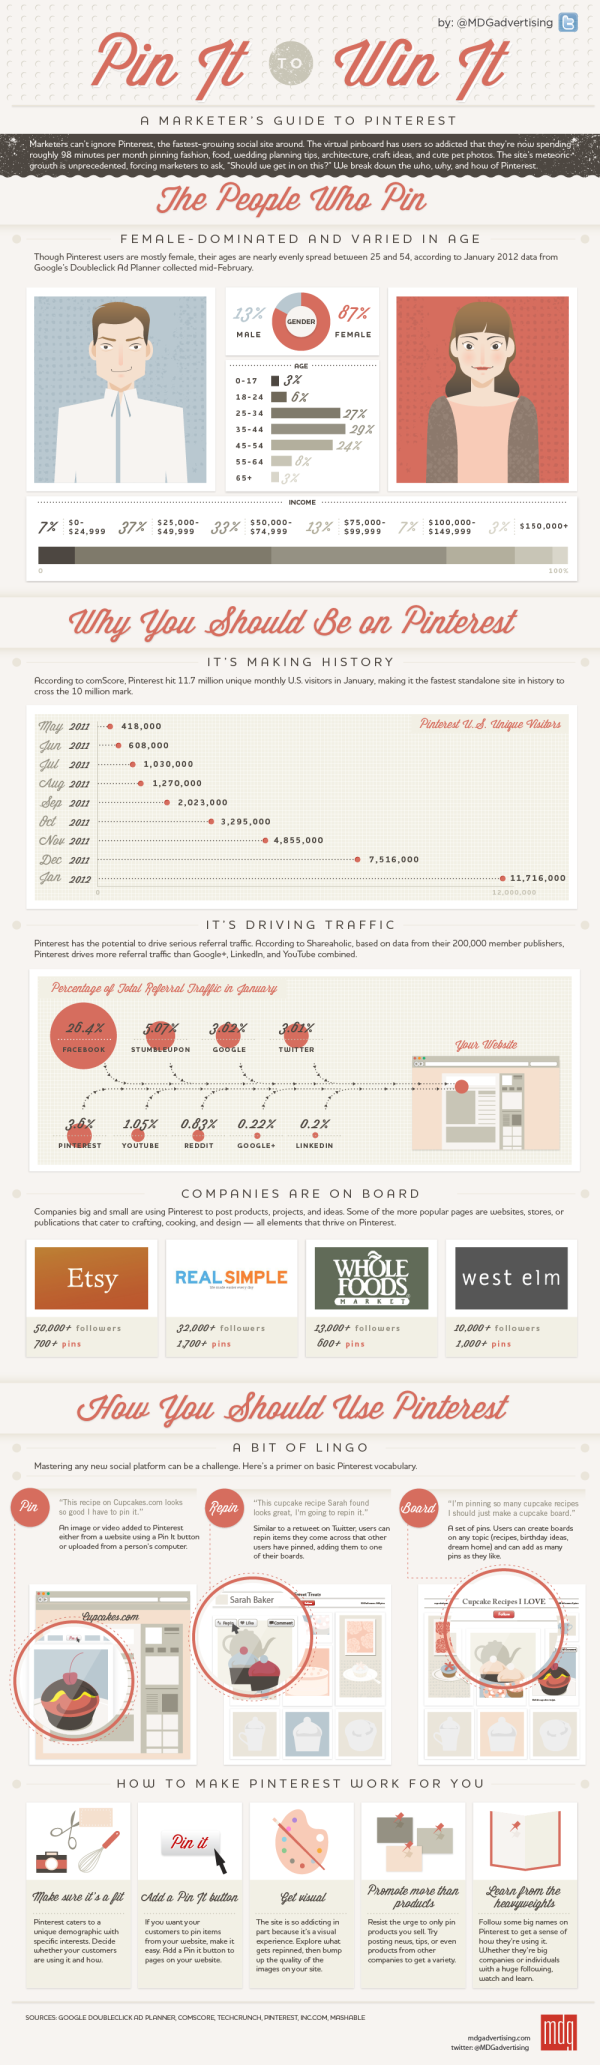 A Marketer's Guide to Pinterest  Infographic